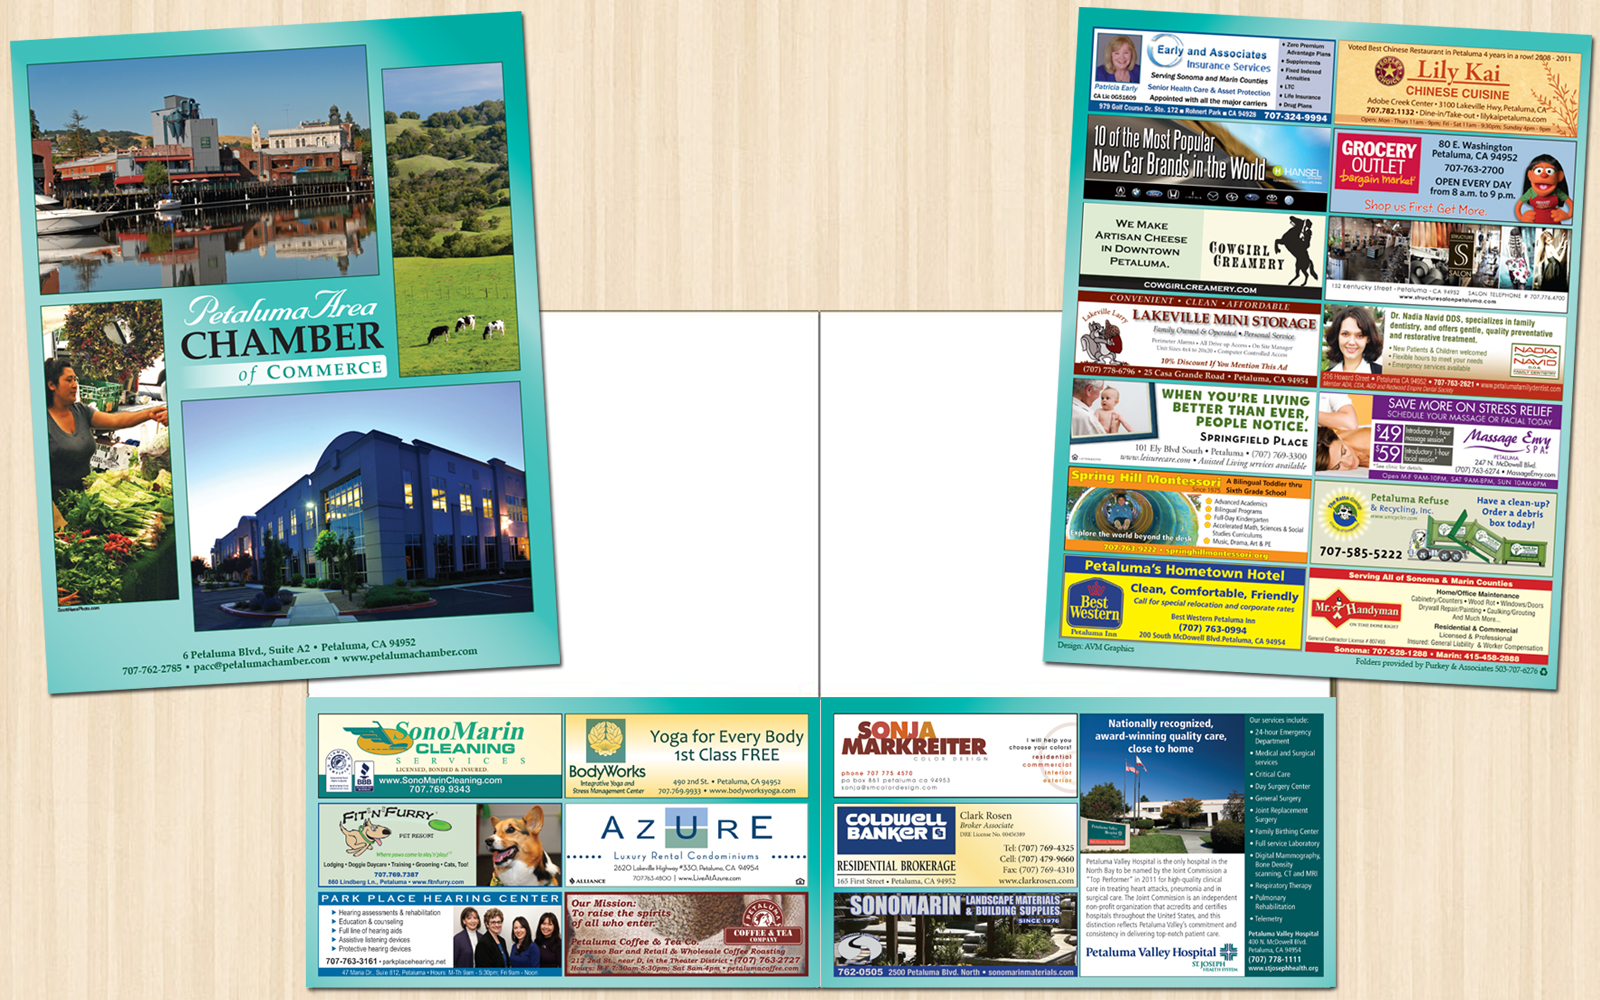 Presentation Folder For The Petaluma Area Chamber Of Commerce